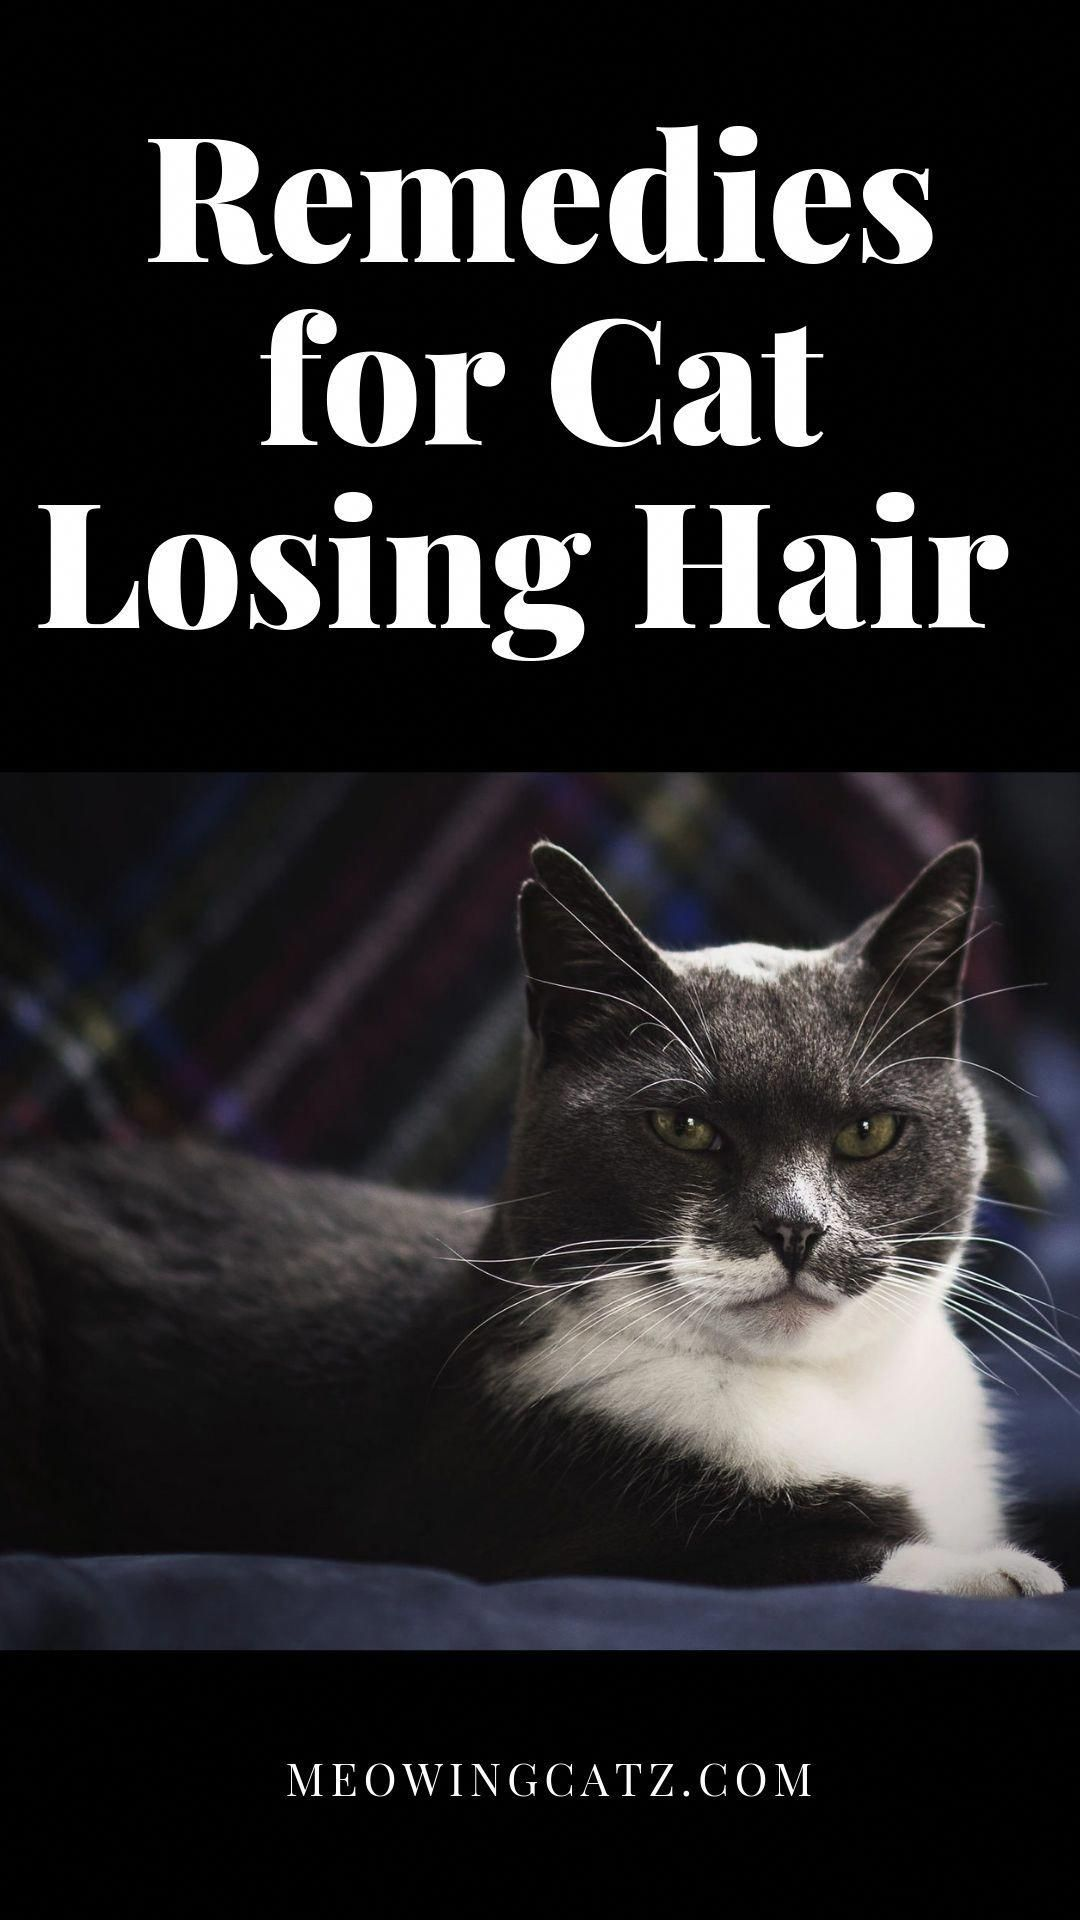 Remedies for Cat Losing Hair in 2020 Cat hair loss, Lost